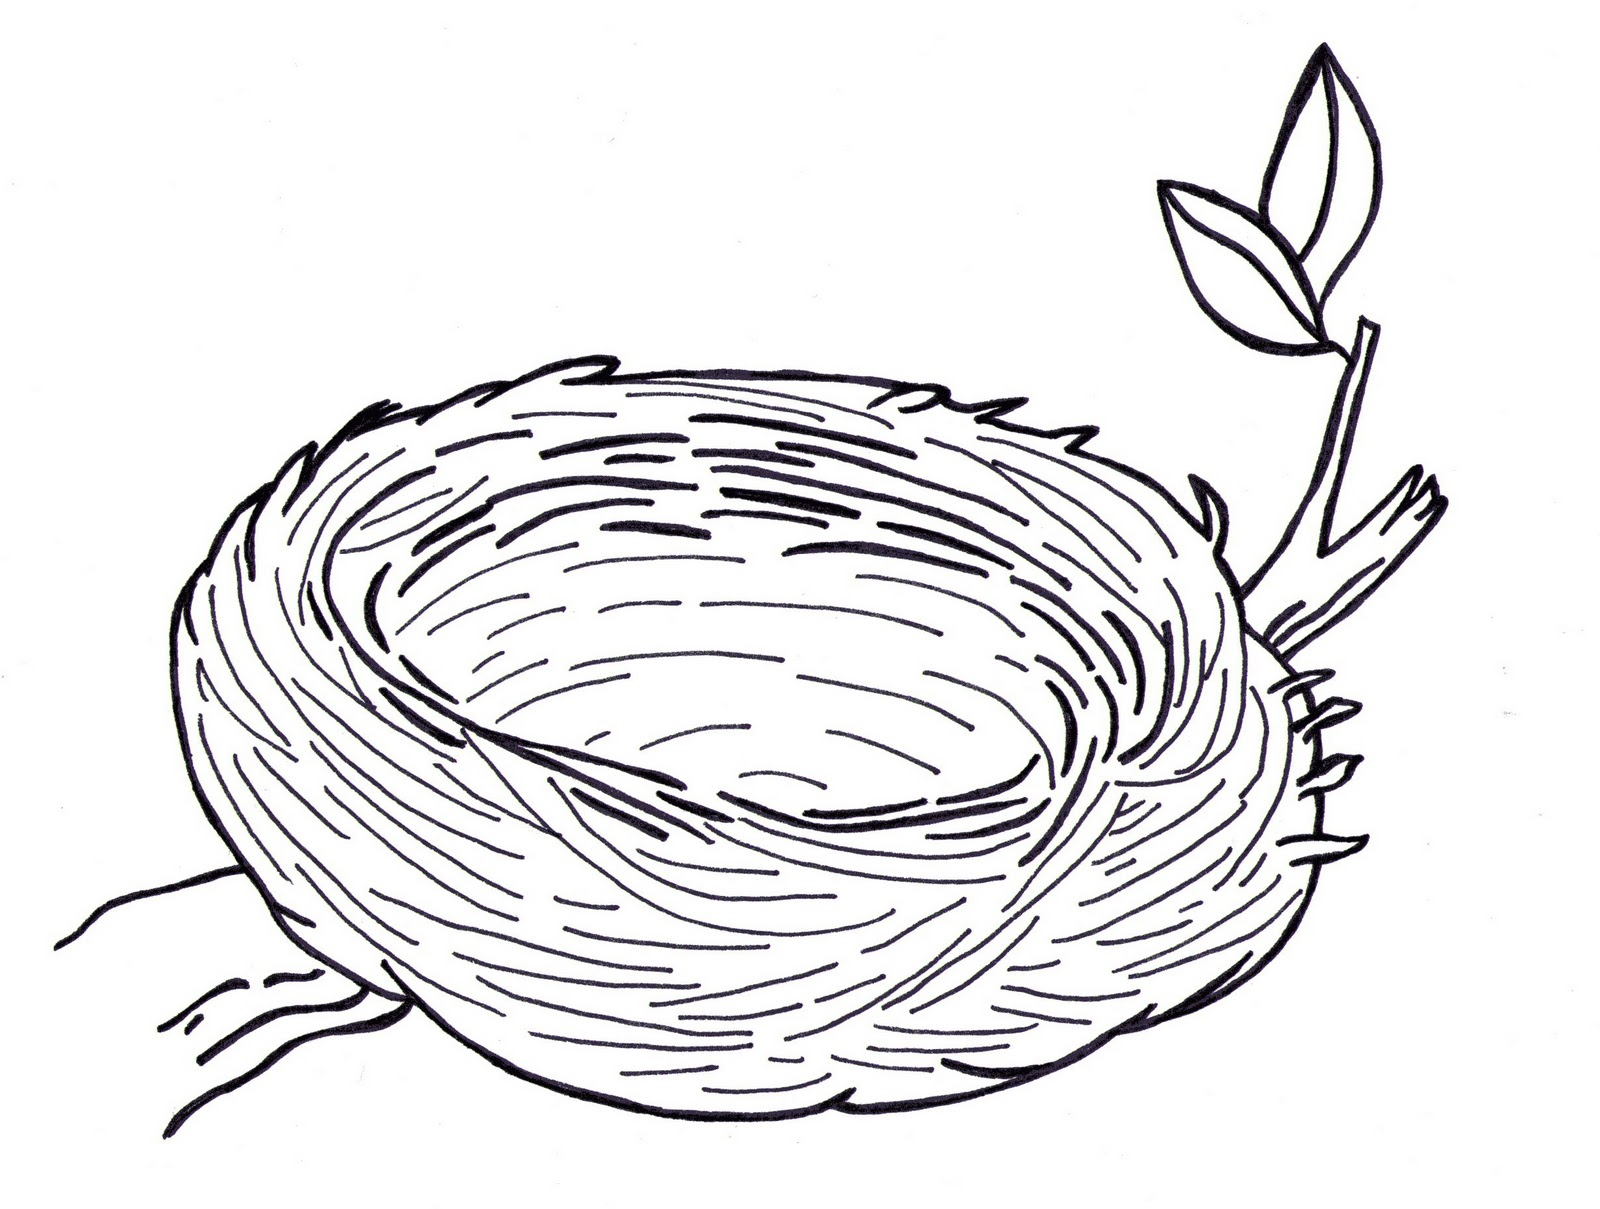 Clipart of a nest picture free library Free Nest Outline Cliparts, Download Free Clip Art, Free Clip Art on ... picture free library